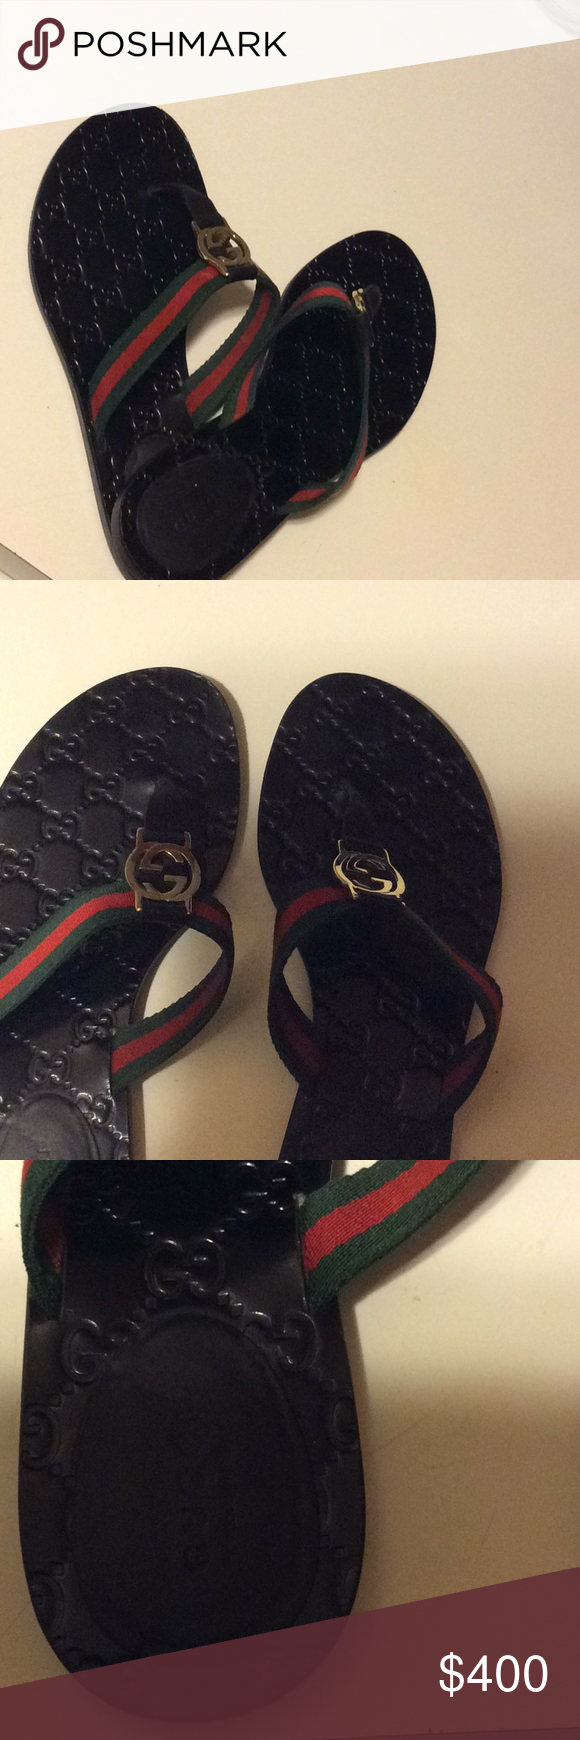 354d11c1c Gucci Women s GG Thong Flats Logo hardware Embossed footbed Signature  colors Lightly used Excellent condition Comes with box and dust bags Gucci  Shoes ...